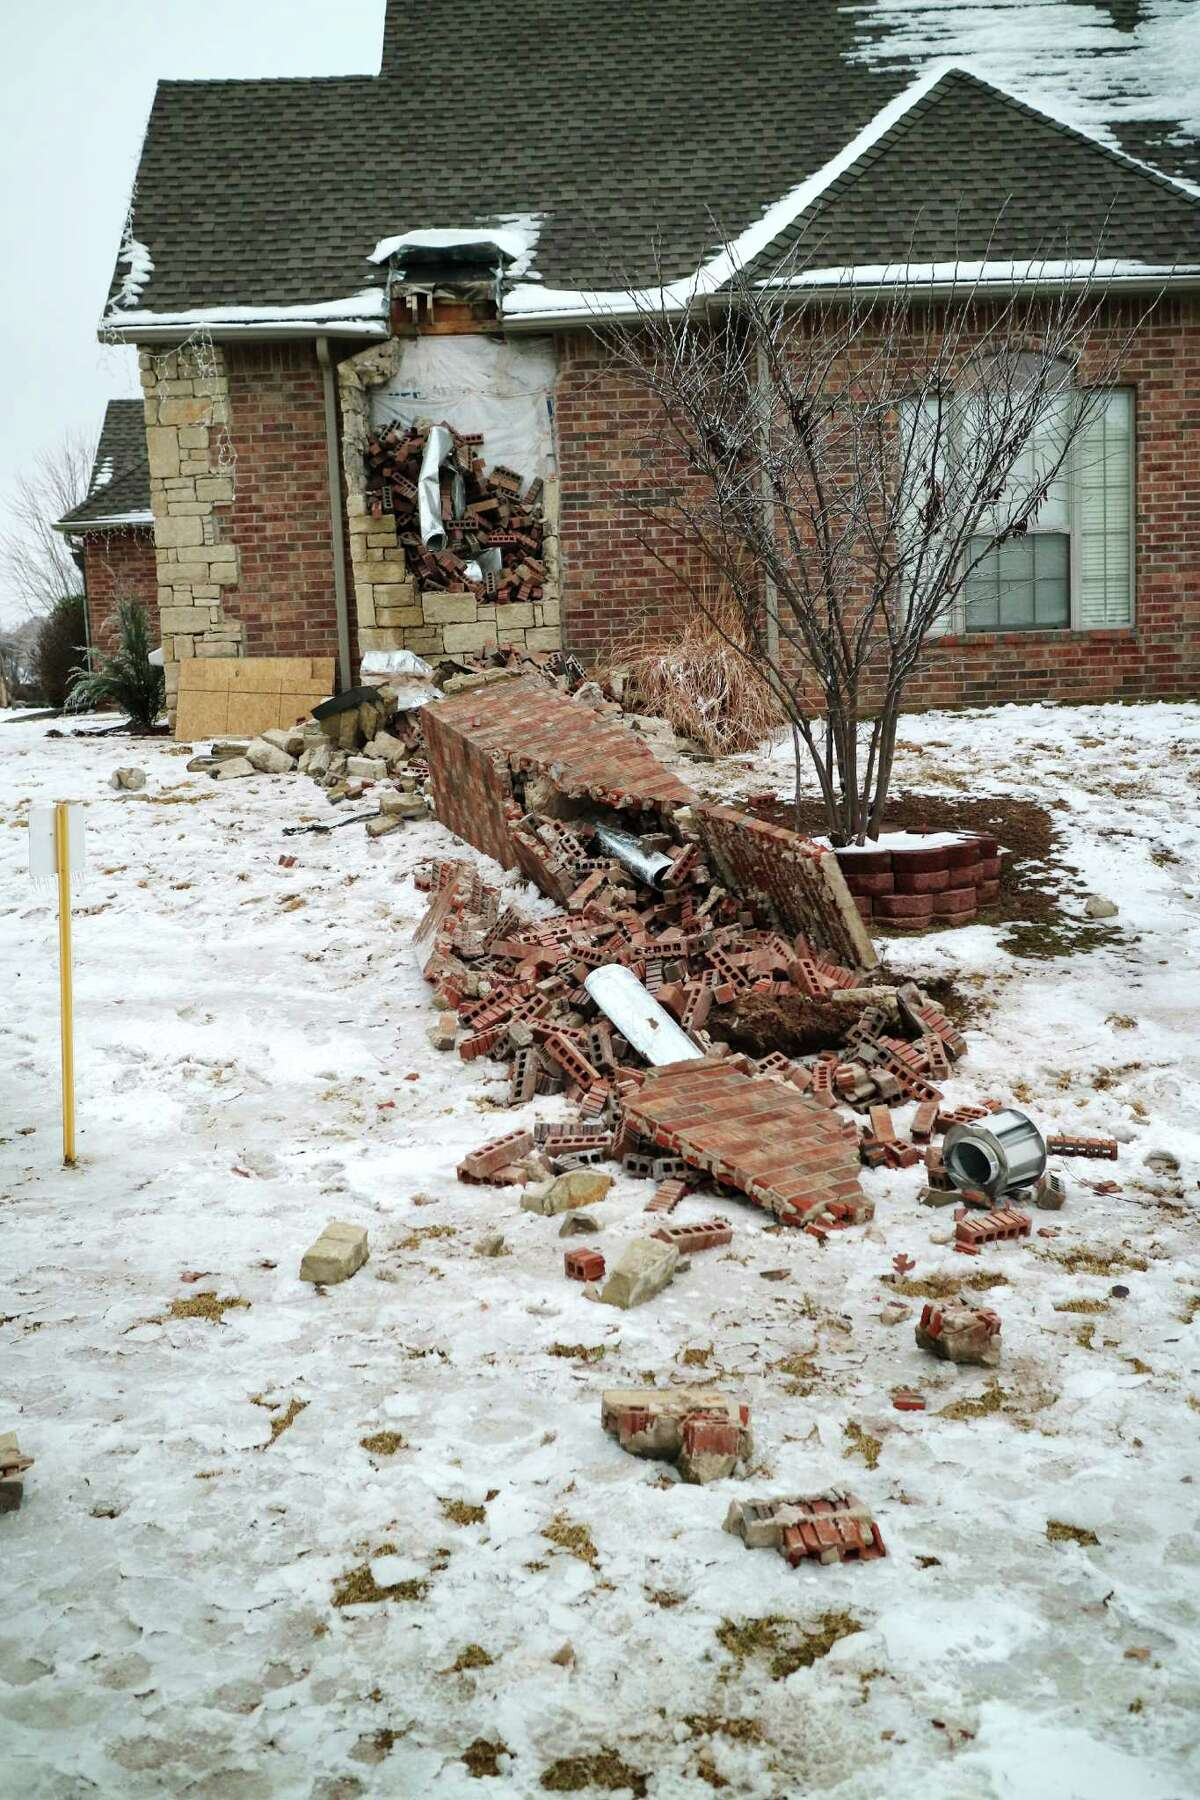 In this Dec. 29, 2015 photo, remains of a collapsed chimney rest on the ground outside a home in Edmond, Okla., following an earthquake. In Oklahoma, now the country?'s earthquake capital, people are talking nervously about the big one as man-made quakes get stronger, more frequent and closer to major population centers. (Doug Hoke/The Oklahoman via AP) LOCAL STATIONS OUT (KFOR, KOCO, KWTV, KOKH, KAUT OUT); LOCAL WEBSITES OUT; LOCAL PRINT OUT (EDMOND SUN OUT, OKLAHOMA GAZETTE OUT) TABLOIDS OUT; MANDATORY CREDIT ORG XMIT: OKOKL201